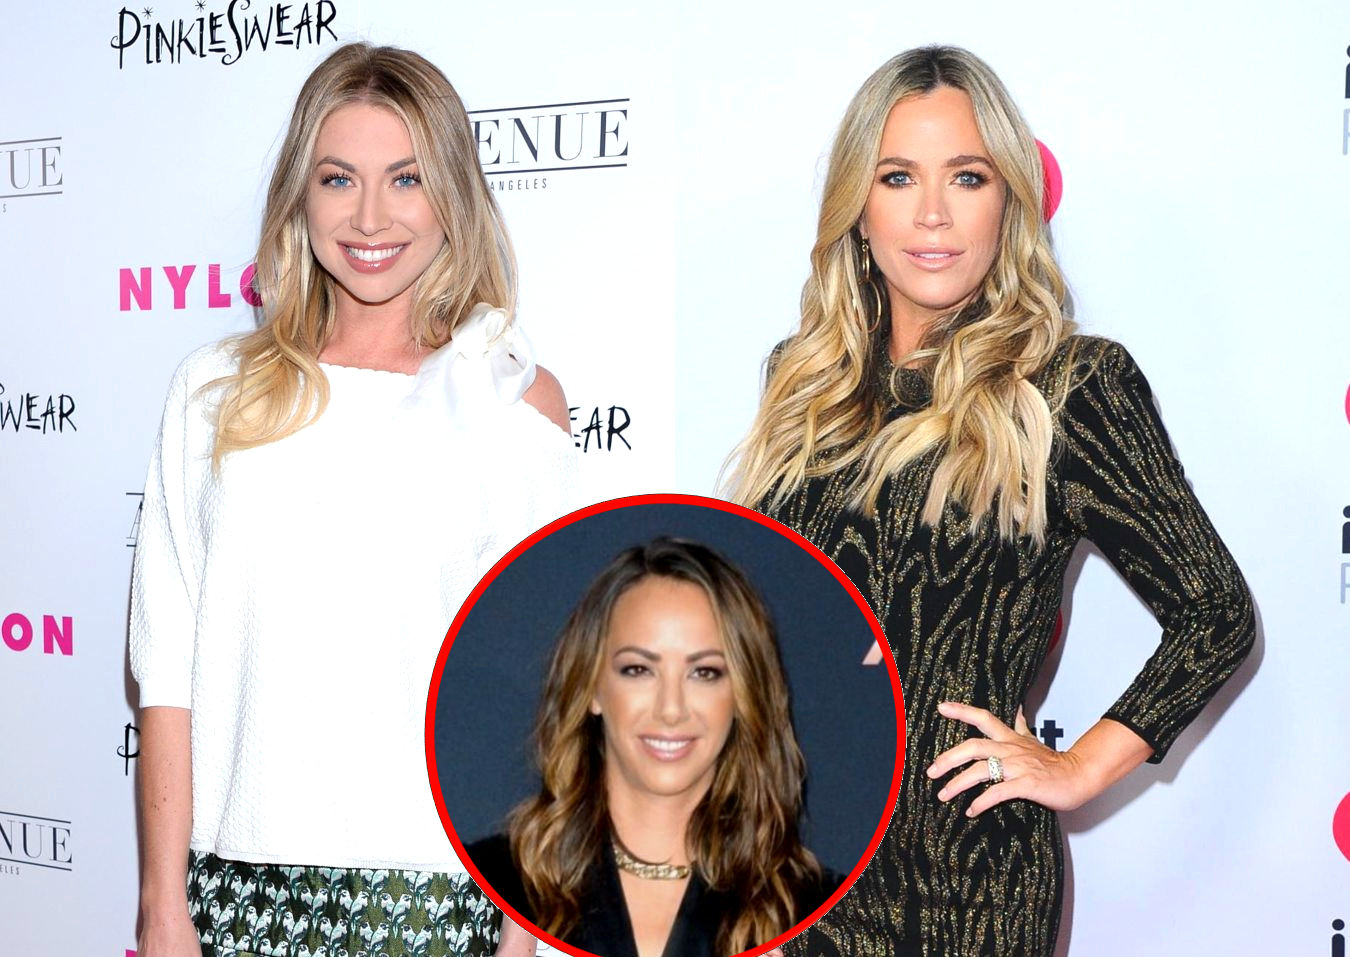 Vanderpump Rules' Stassi Schroeder Explains Why RHOBH Star Teddi Mellencamp Will Be Invited to Her Wedding, Plus is Kristen Doute Invited?